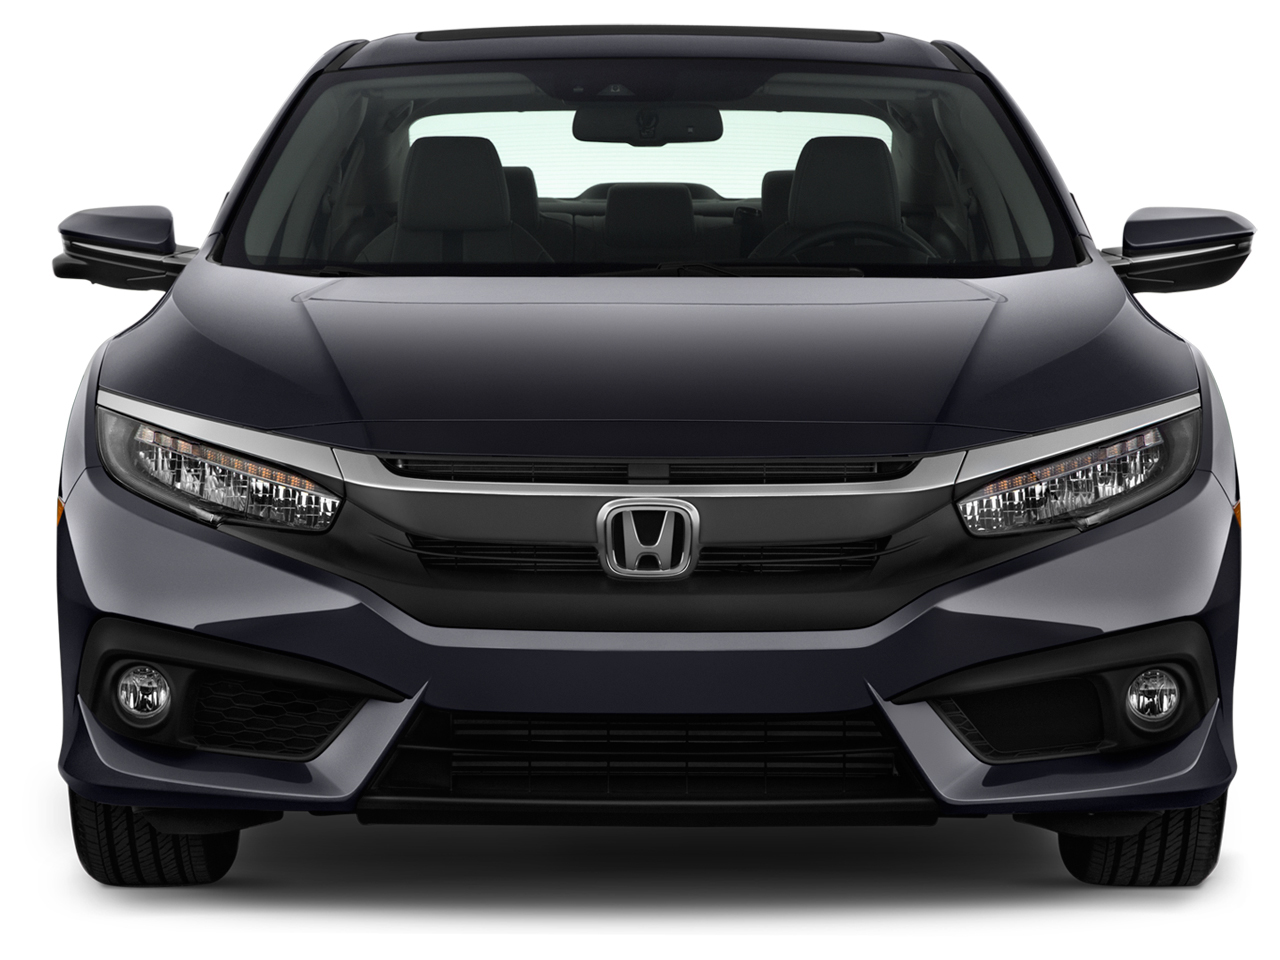 Honda civic 2018 1 5 rs in uae new car prices specs for 2016 honda civic gas tank size